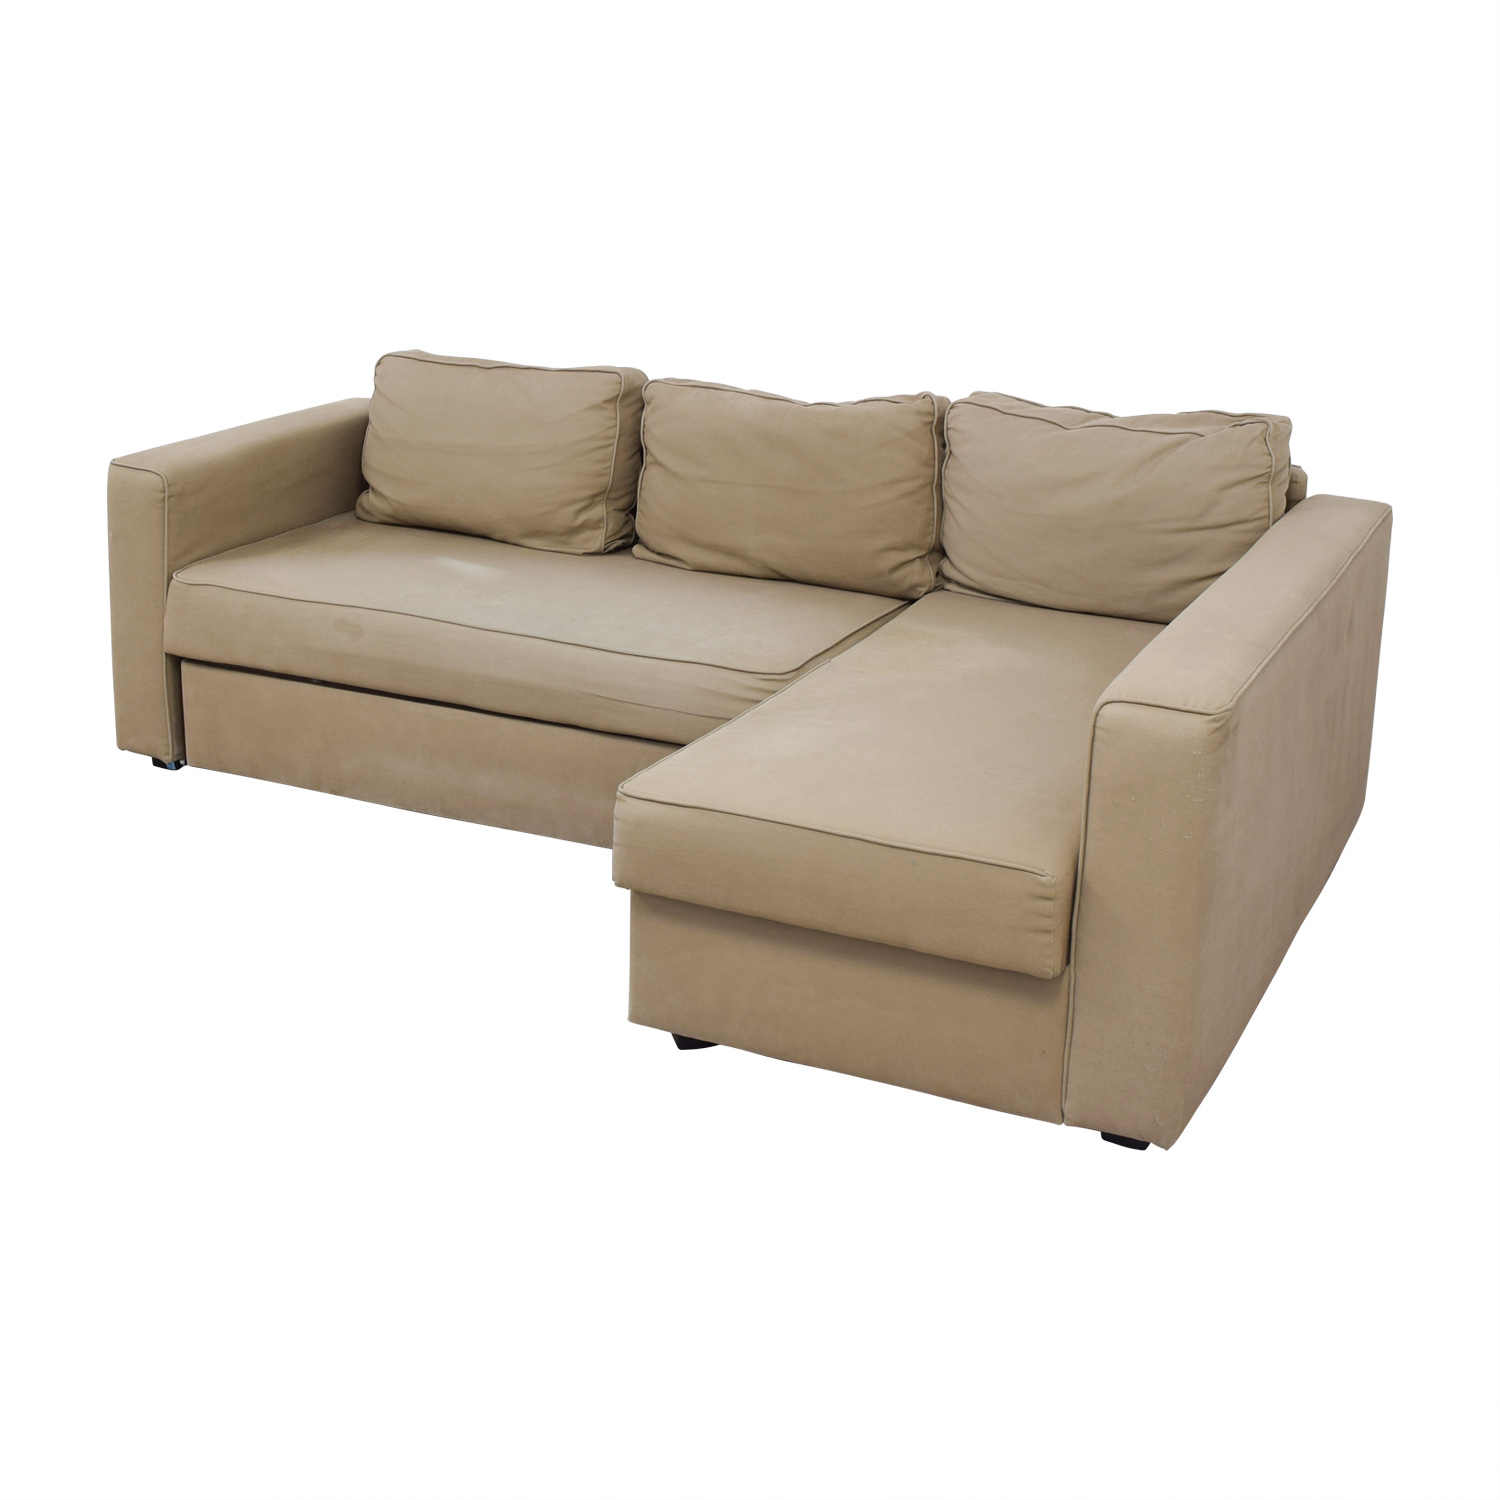 62 Off Ikea Ikea Manstad Sectional Sofa Bed With